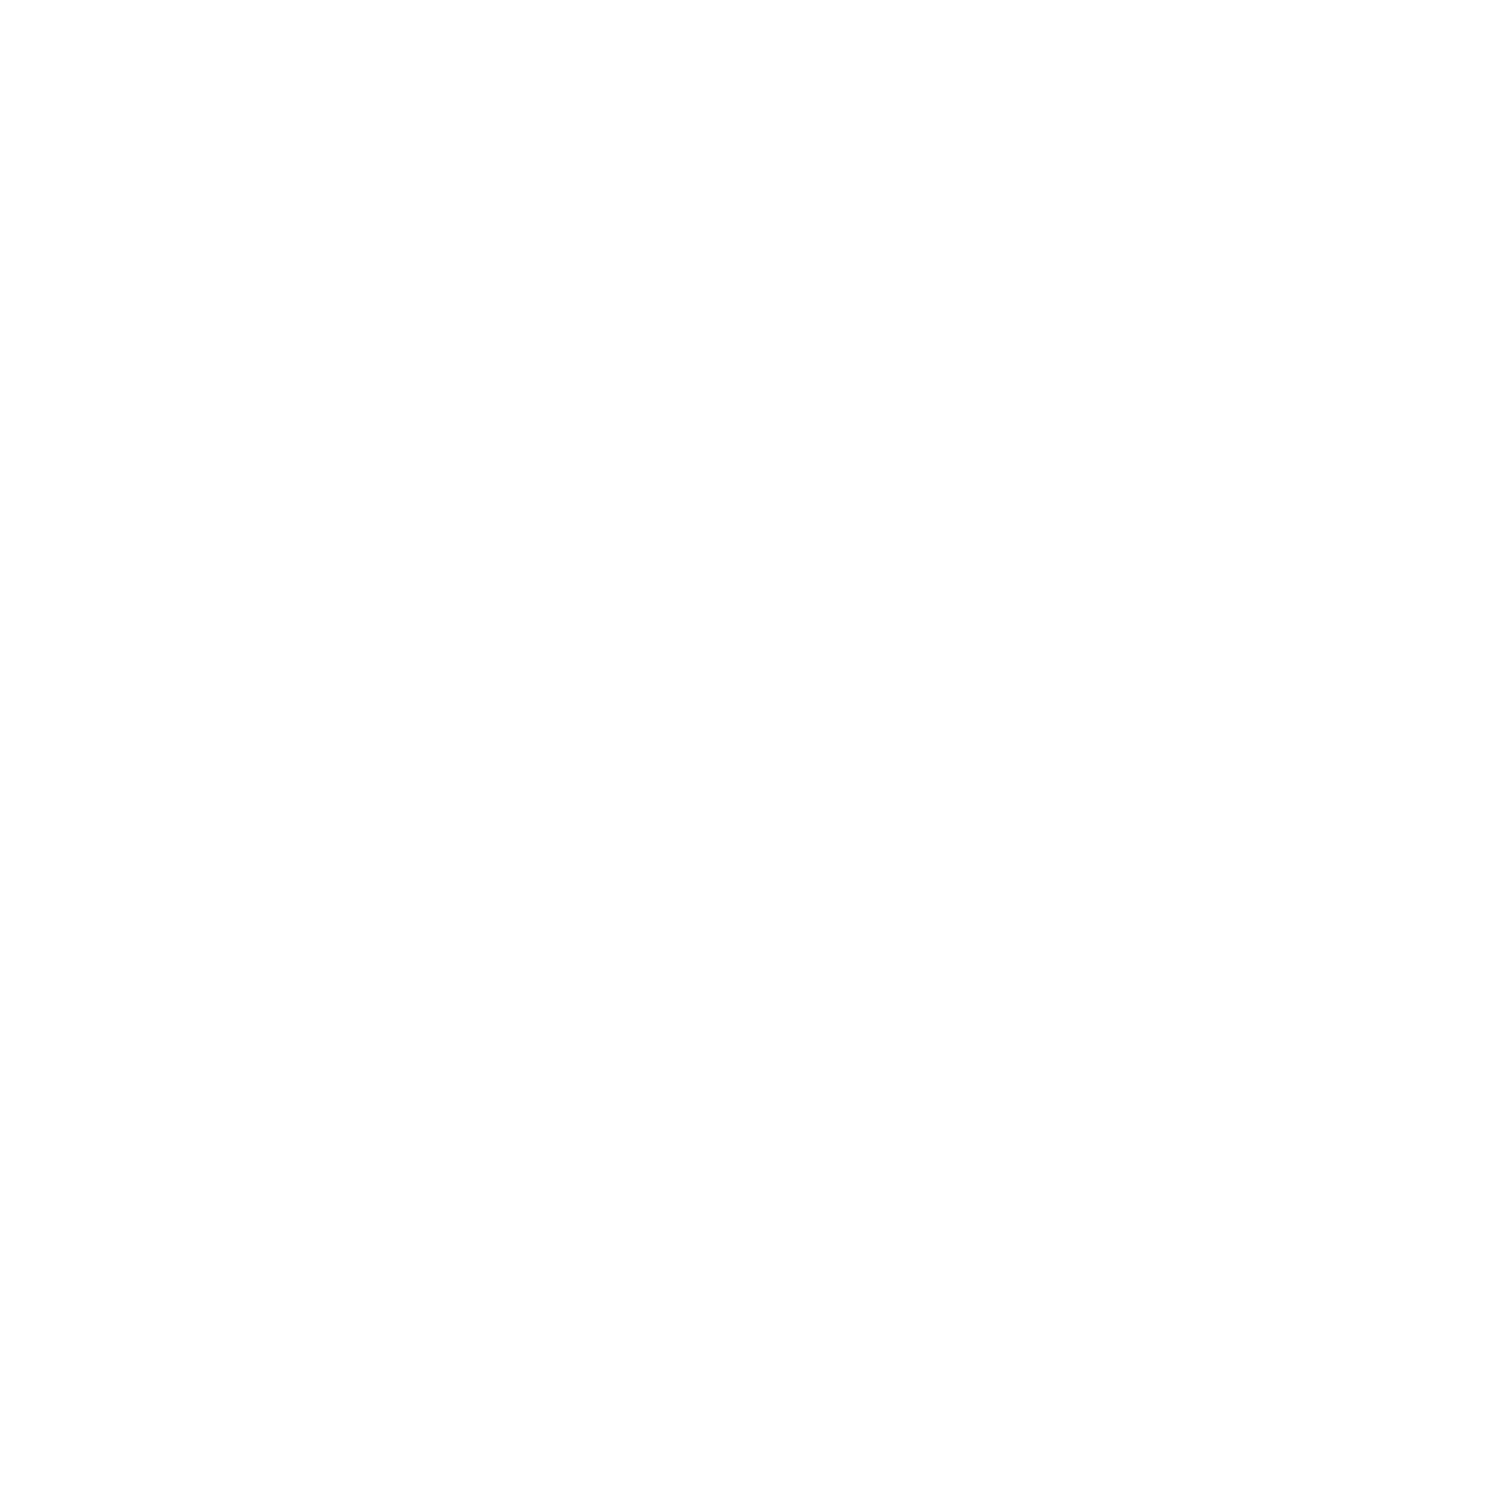 Commercial & Event Photography | Taber Photography